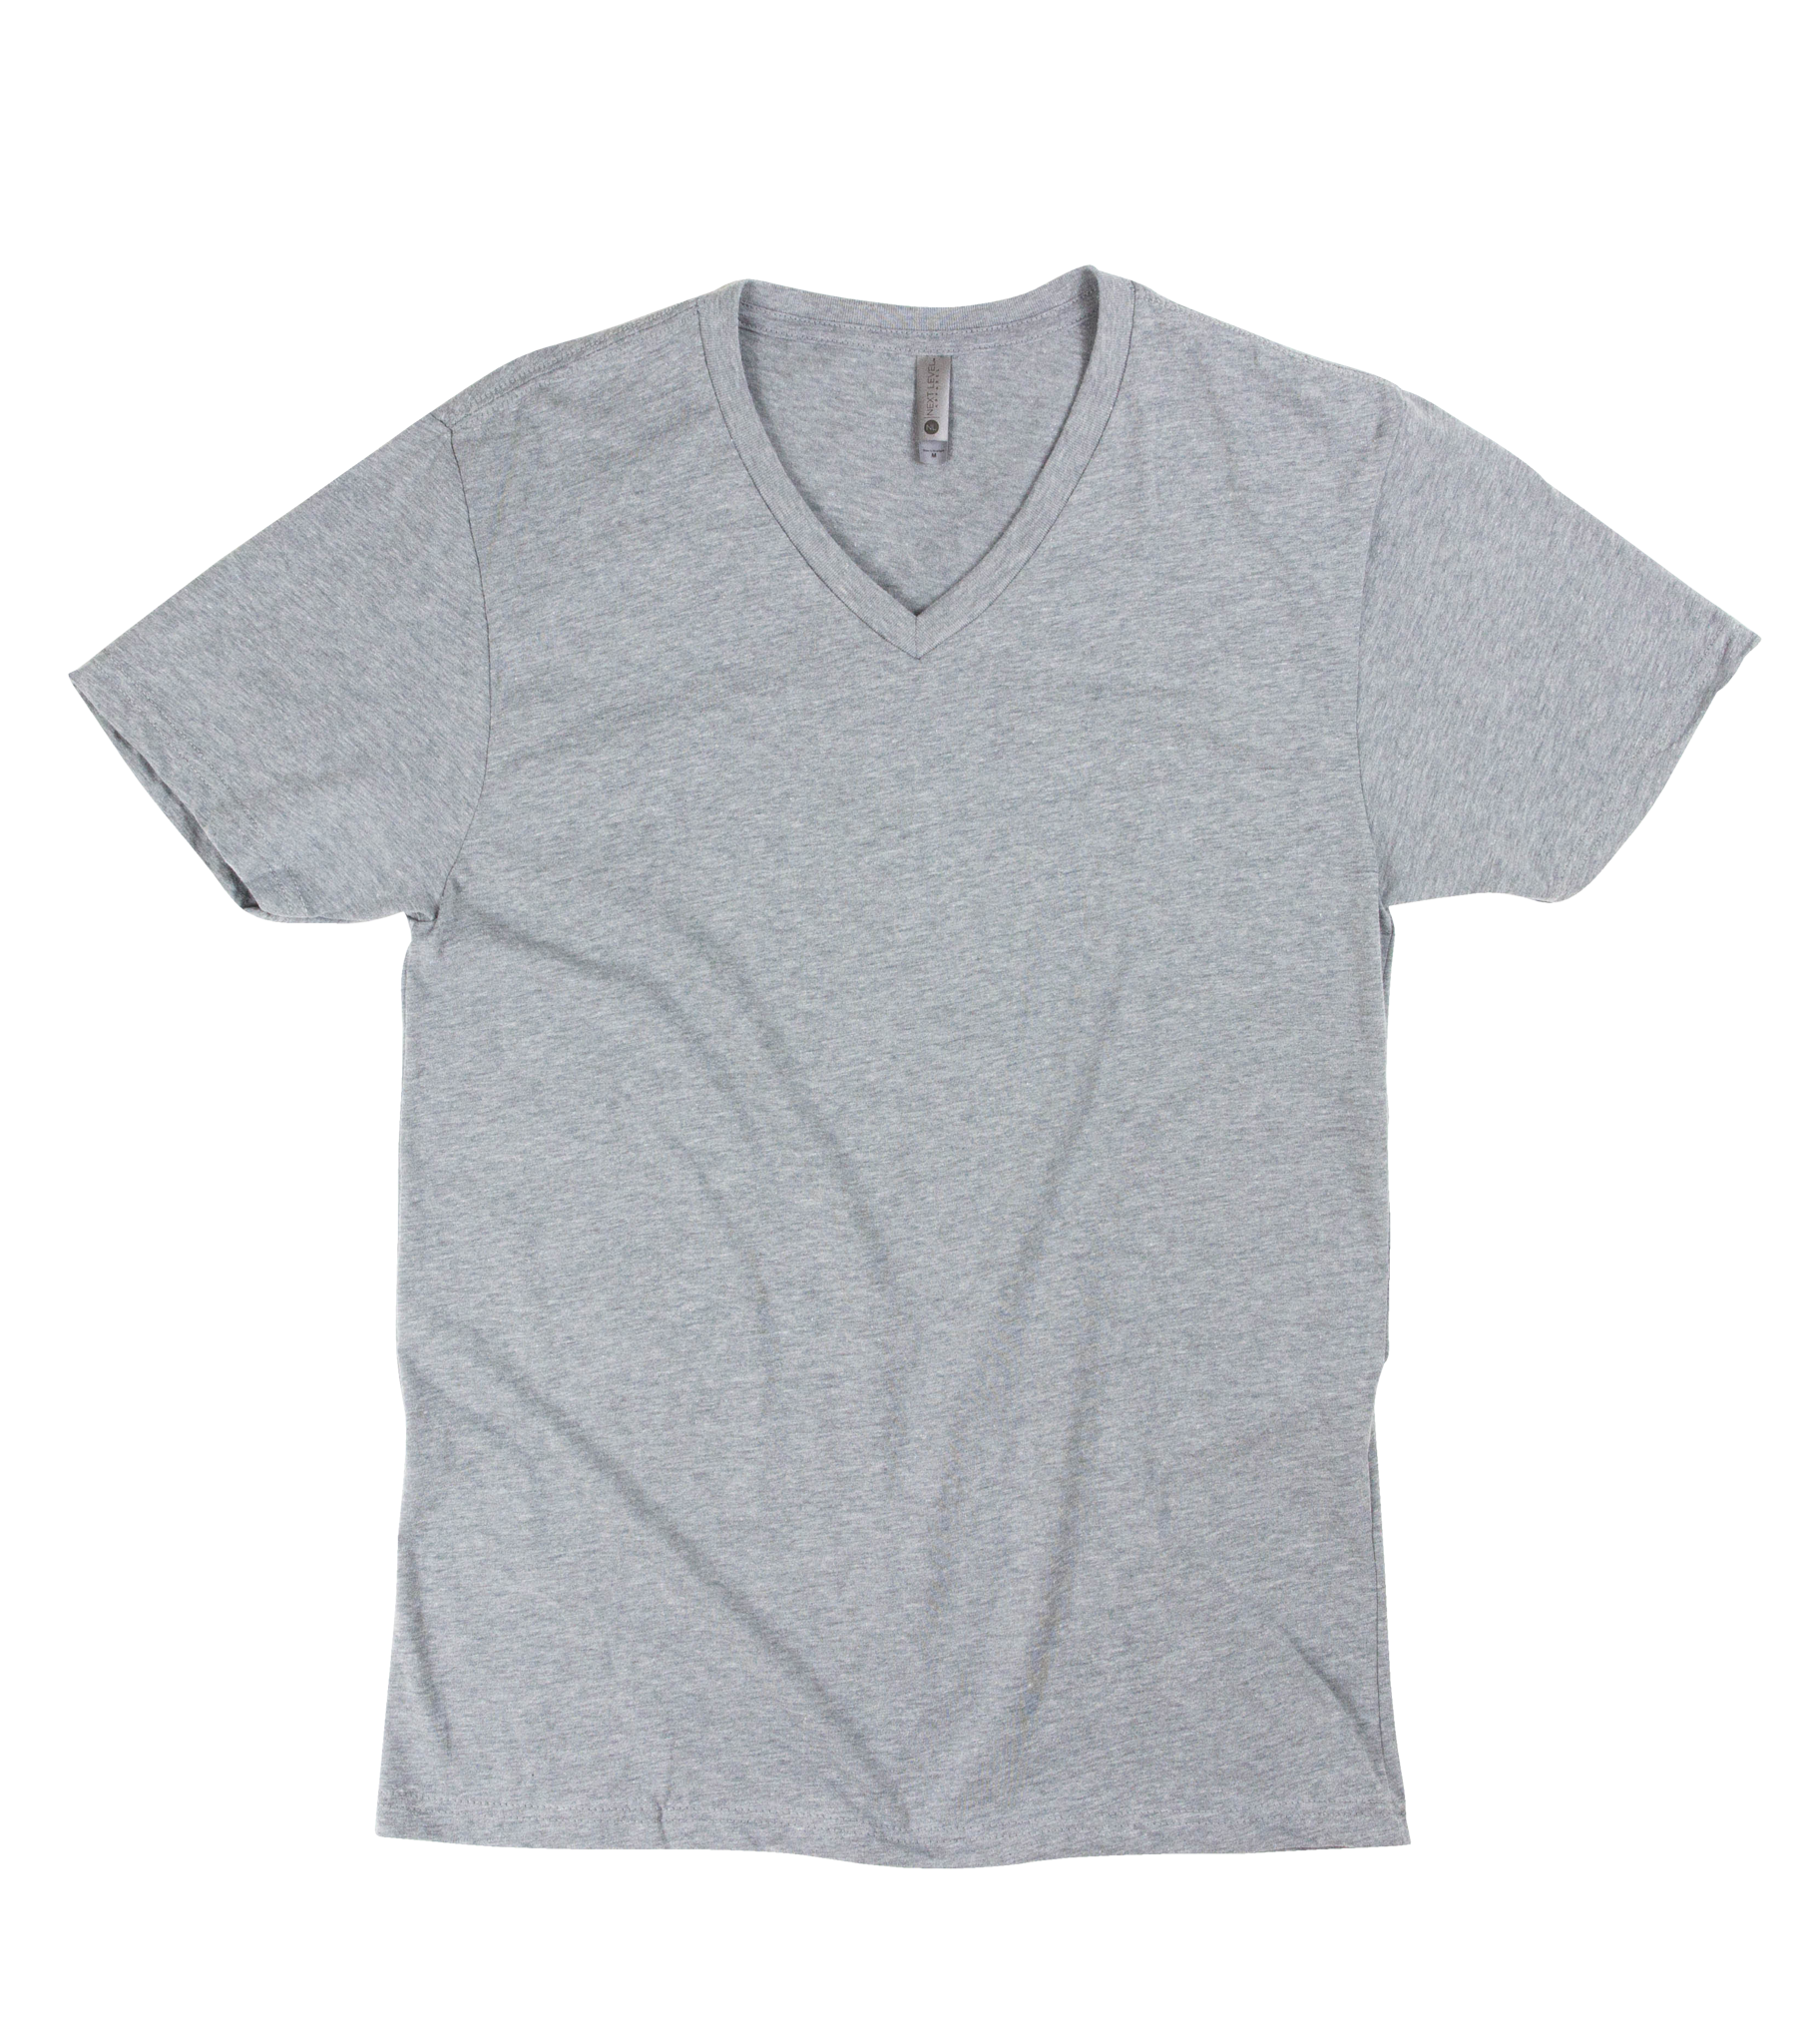 Transparent tshirt v neck. Order next level cvc